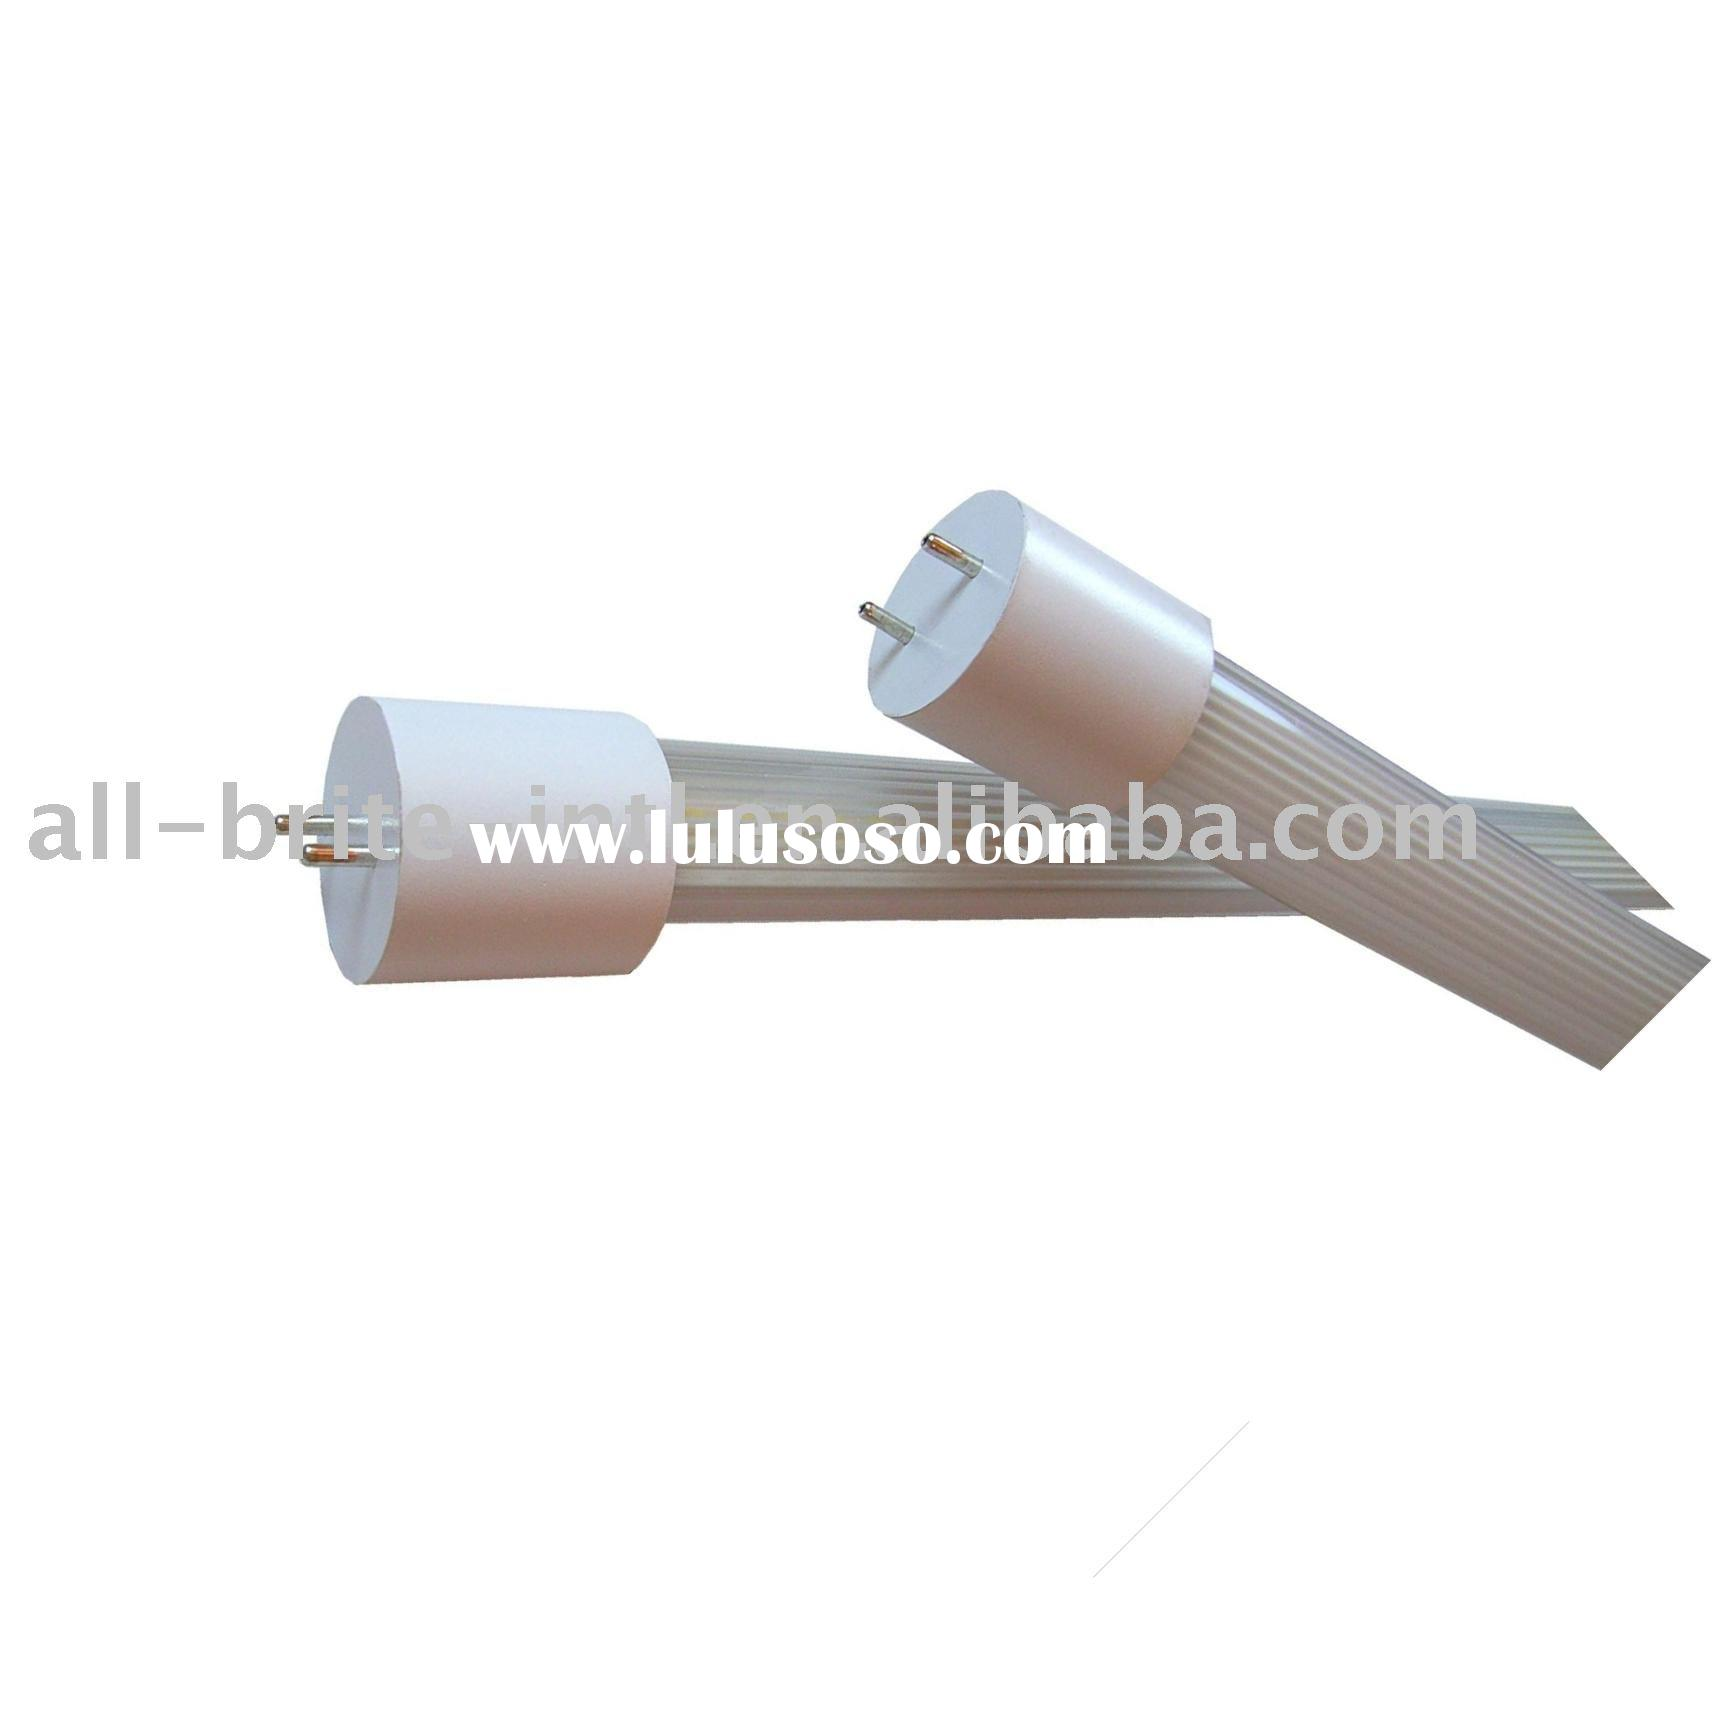 12W 850lm T8 LED Tube Light for Fluorescent Lamp replacement